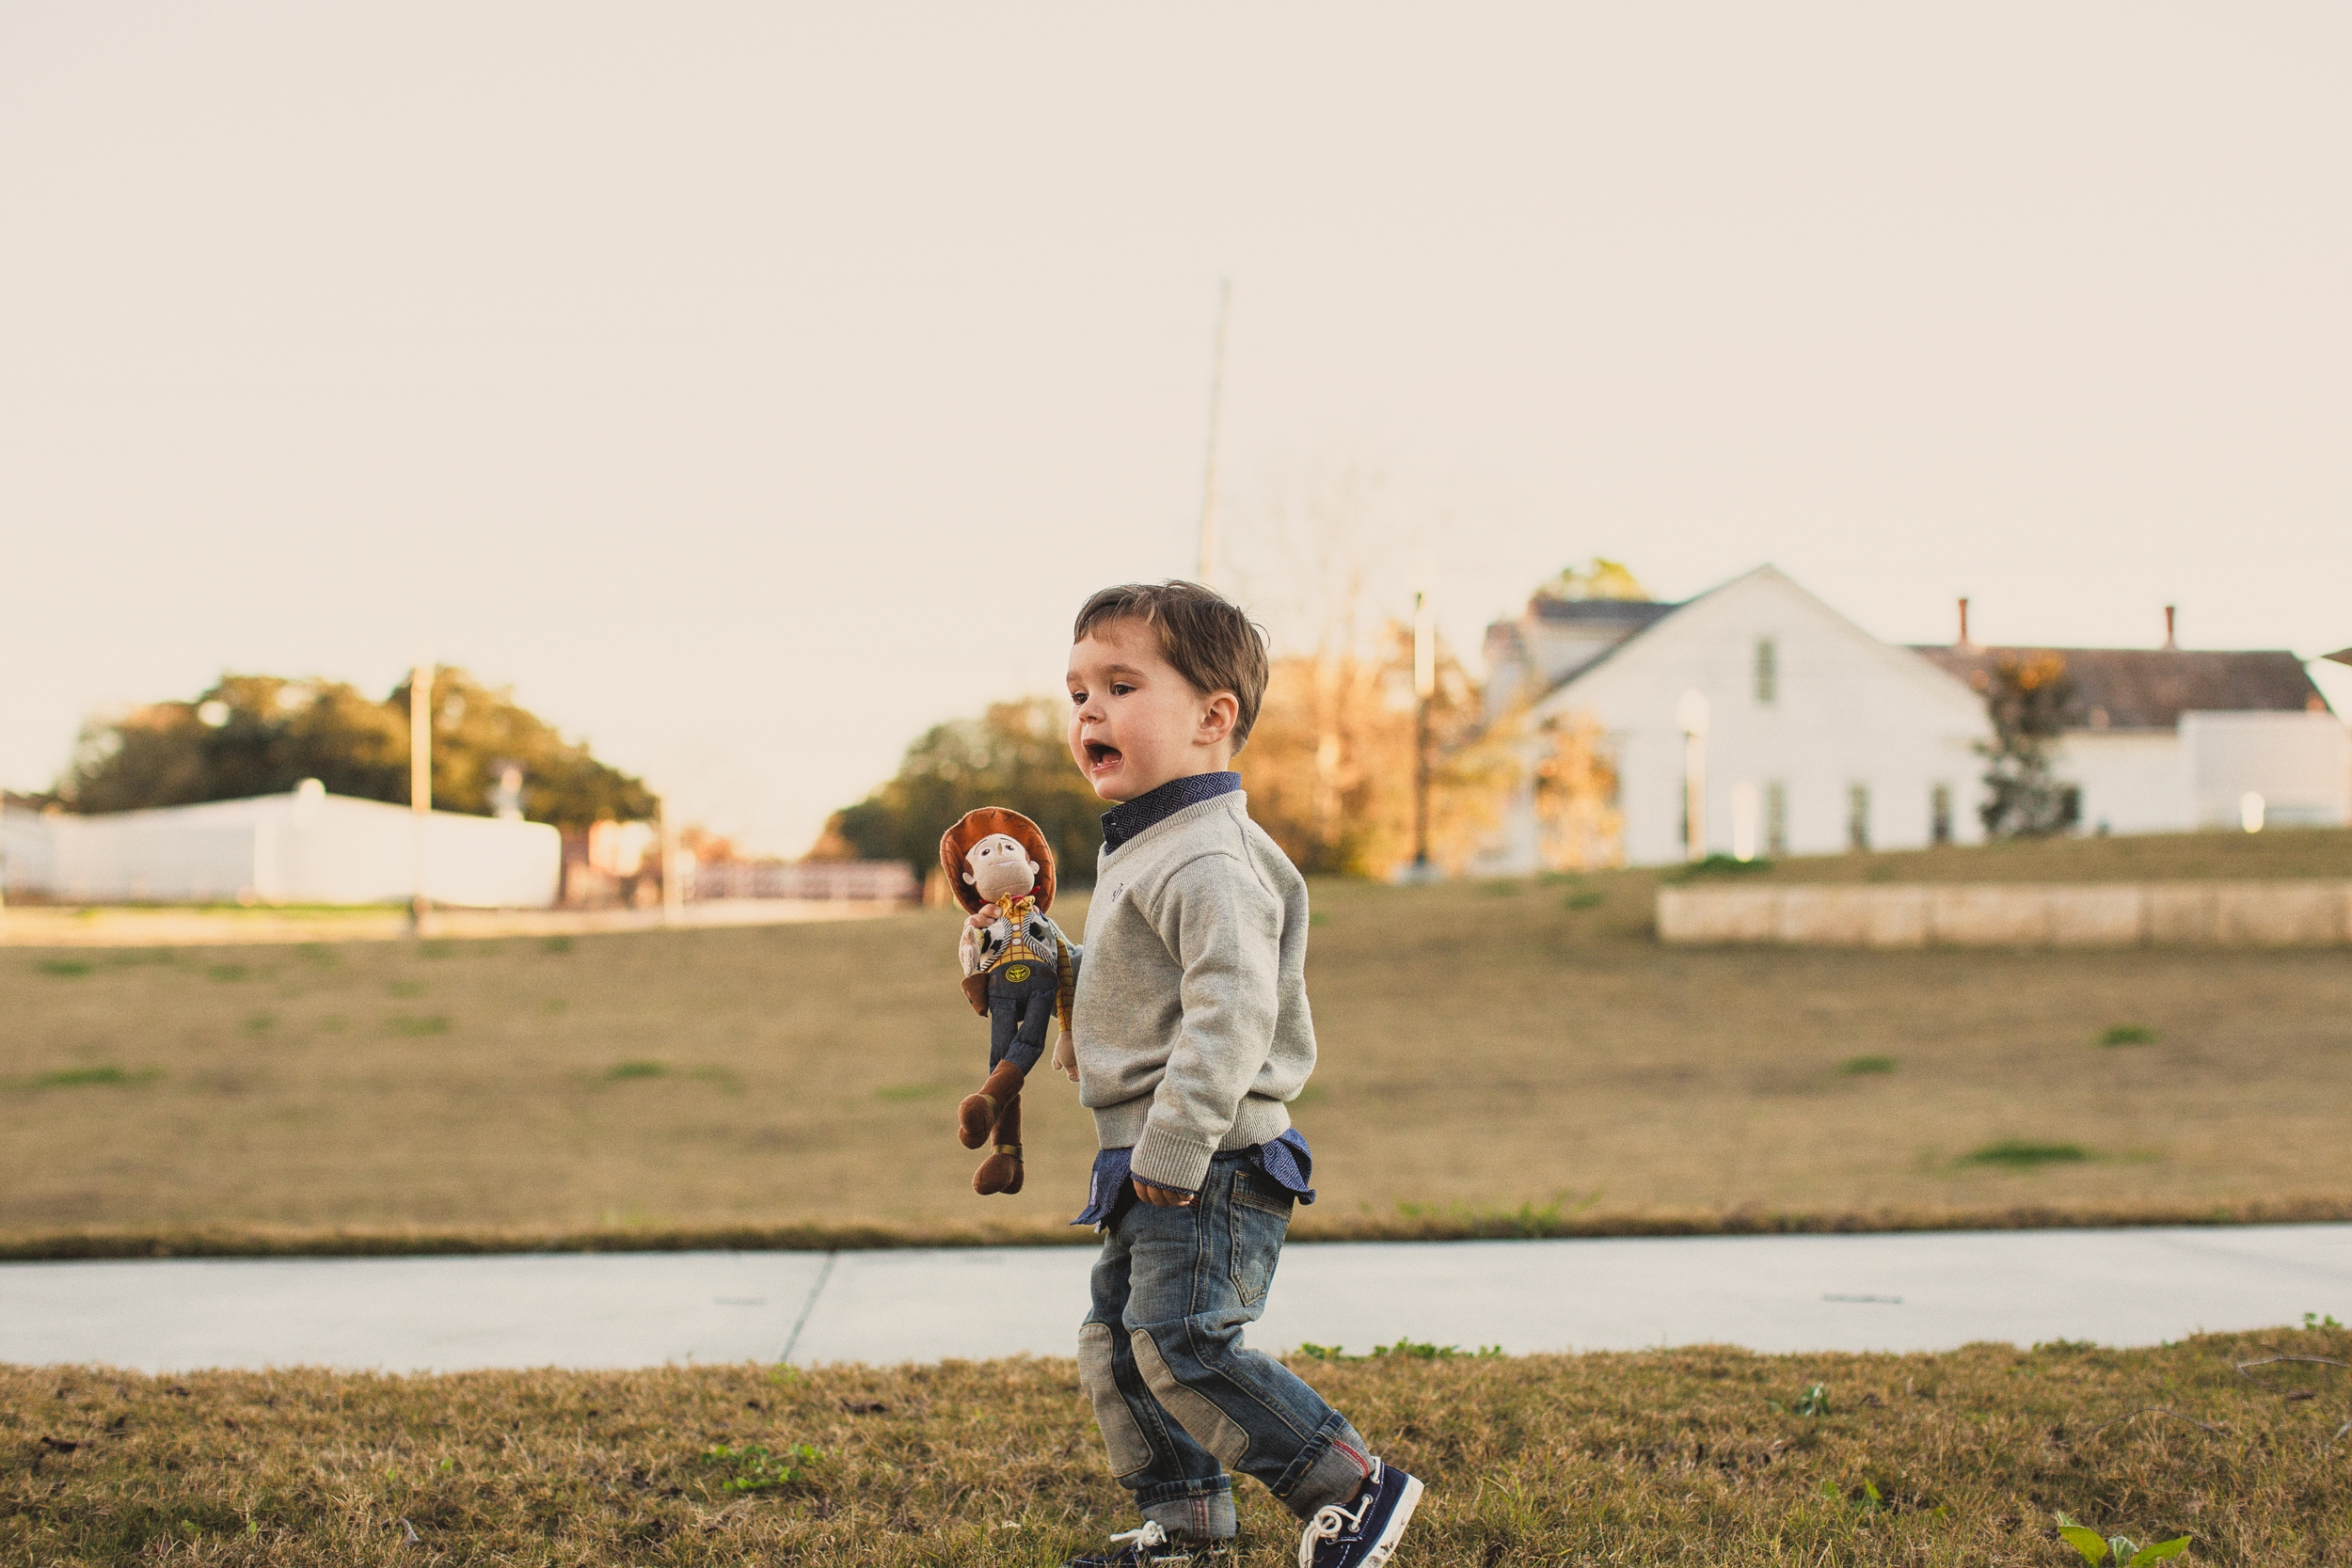 houstonfamilyphotographer_h2015_brimberry-226-final.jpg